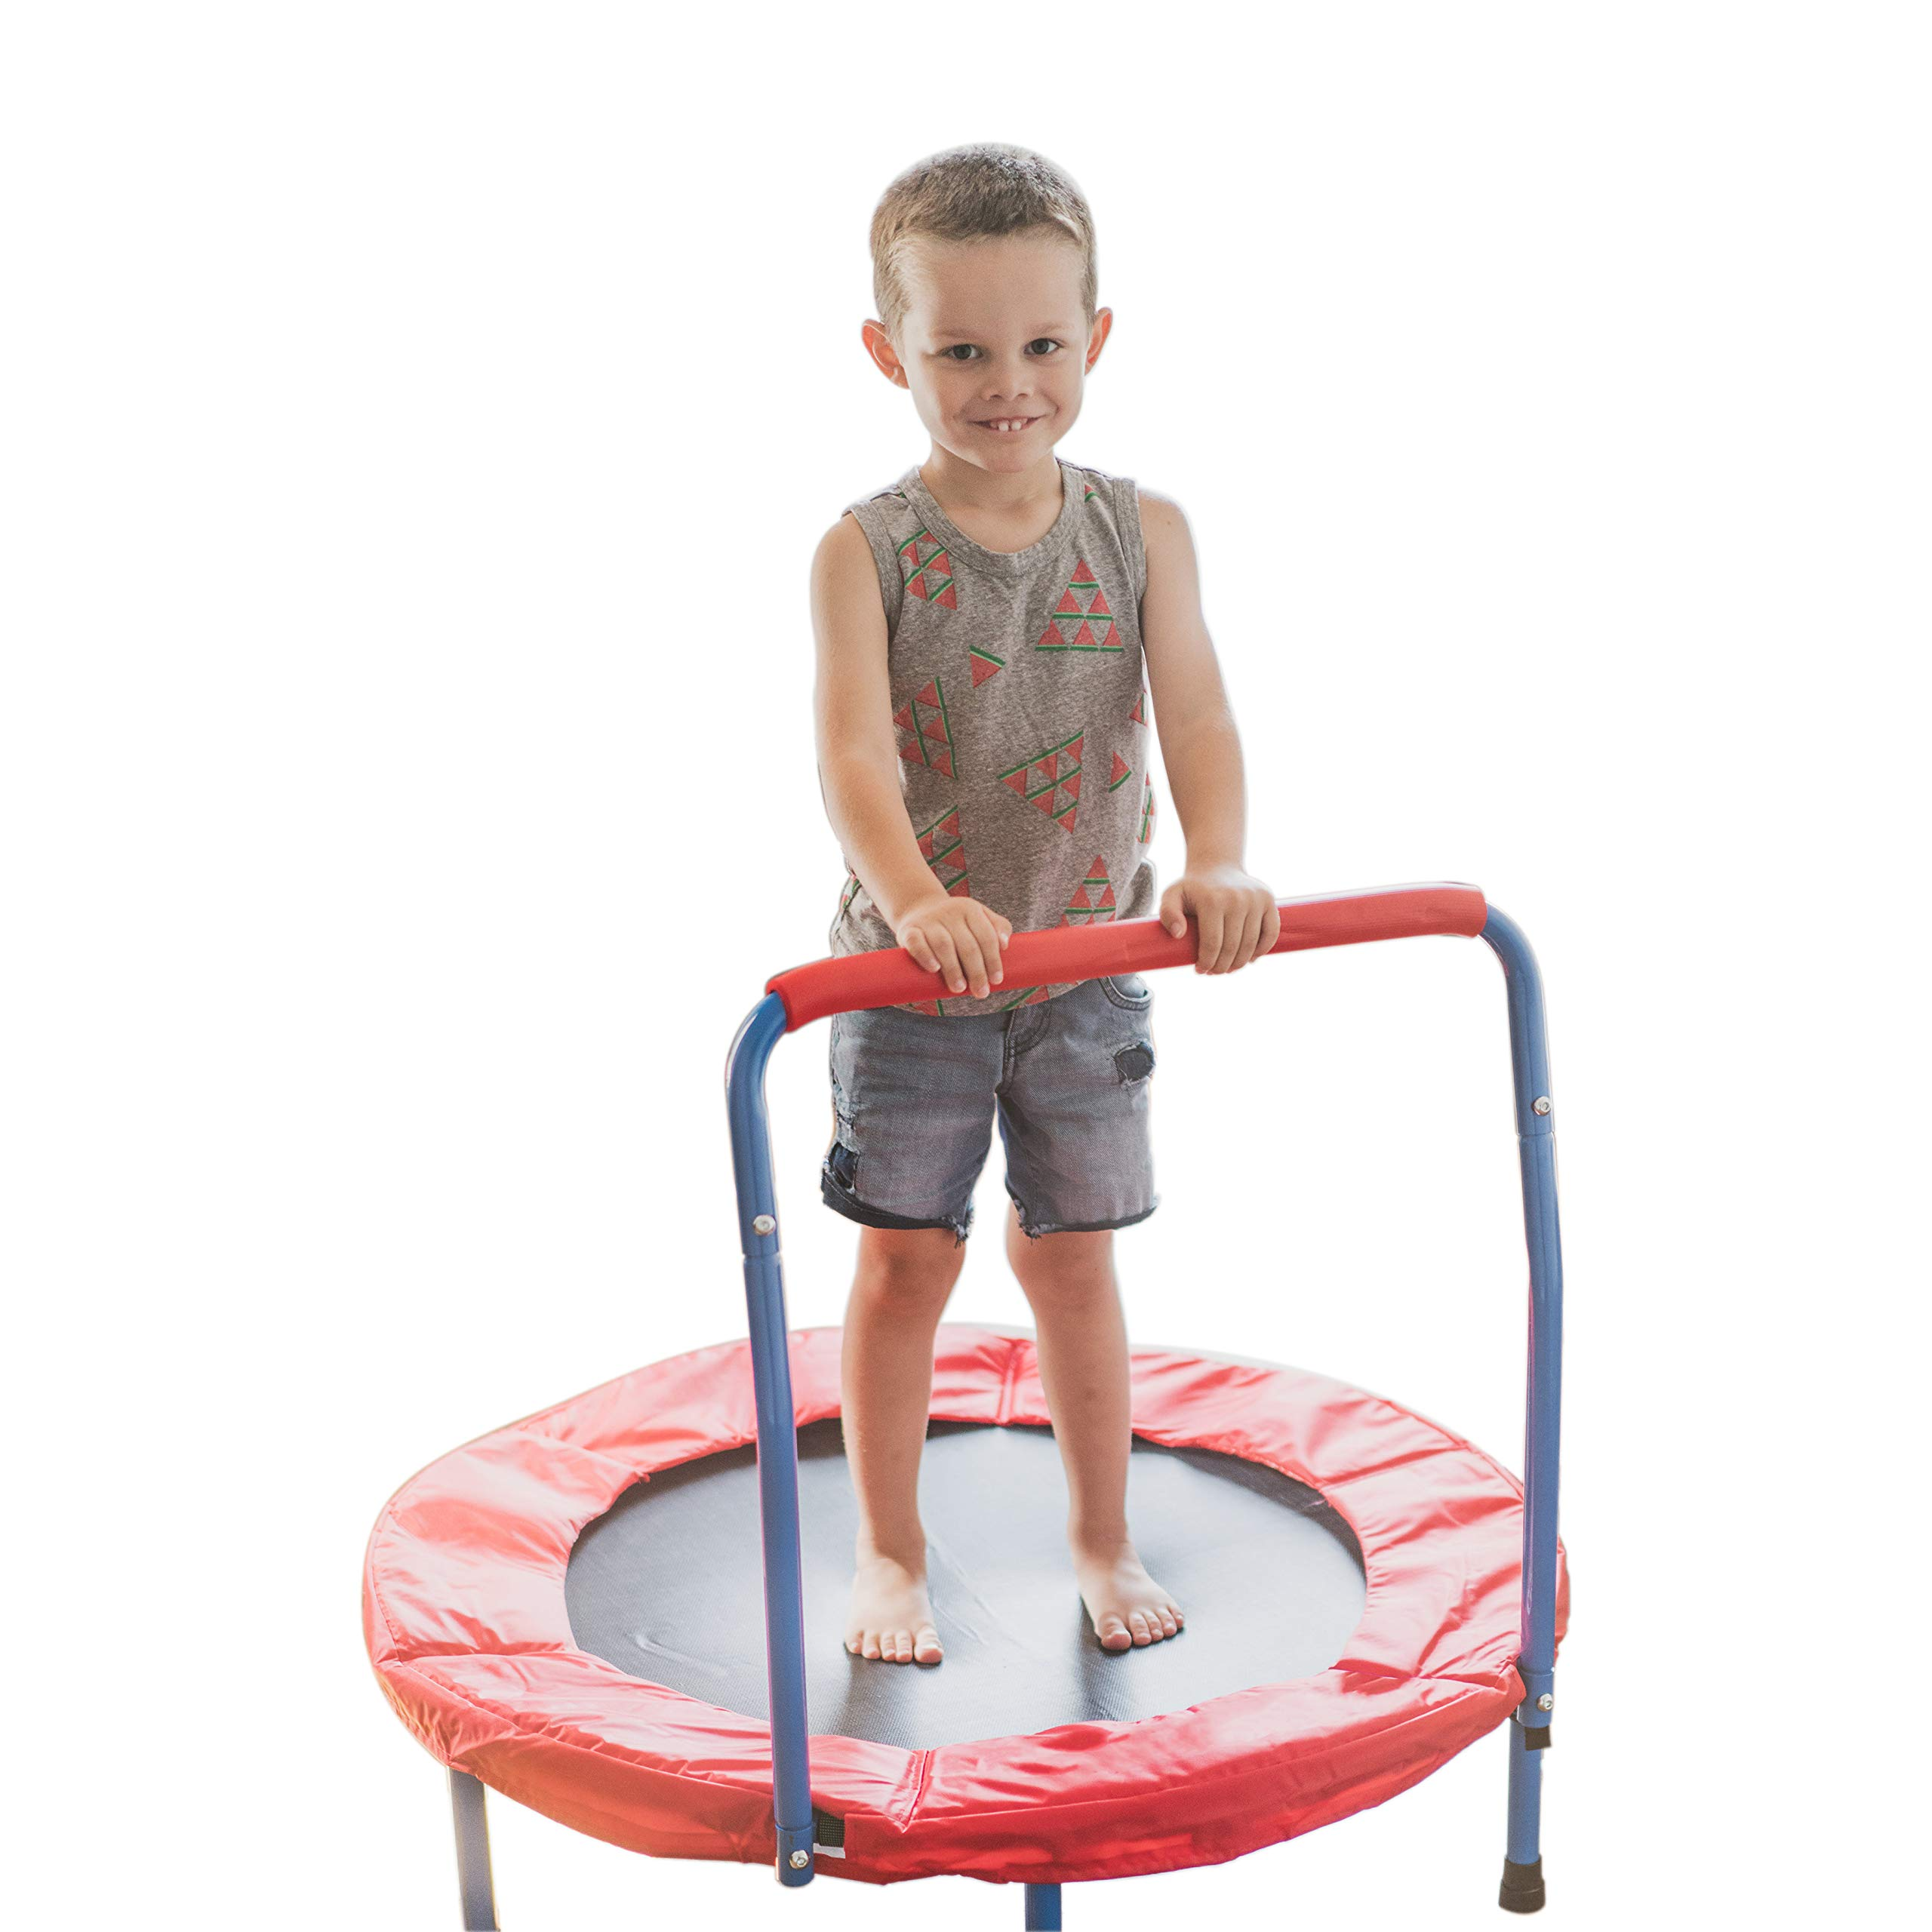 Portable Kids Trampoline with Handle - 36 Inches Outdoor or Indoor Trampoline for Kids - Sturdy Durable Ensure Safety - Build Confidence and Physical Strength Activity - Easy to Assemble Toddler Toys by Toy Goodkids (Image #1)